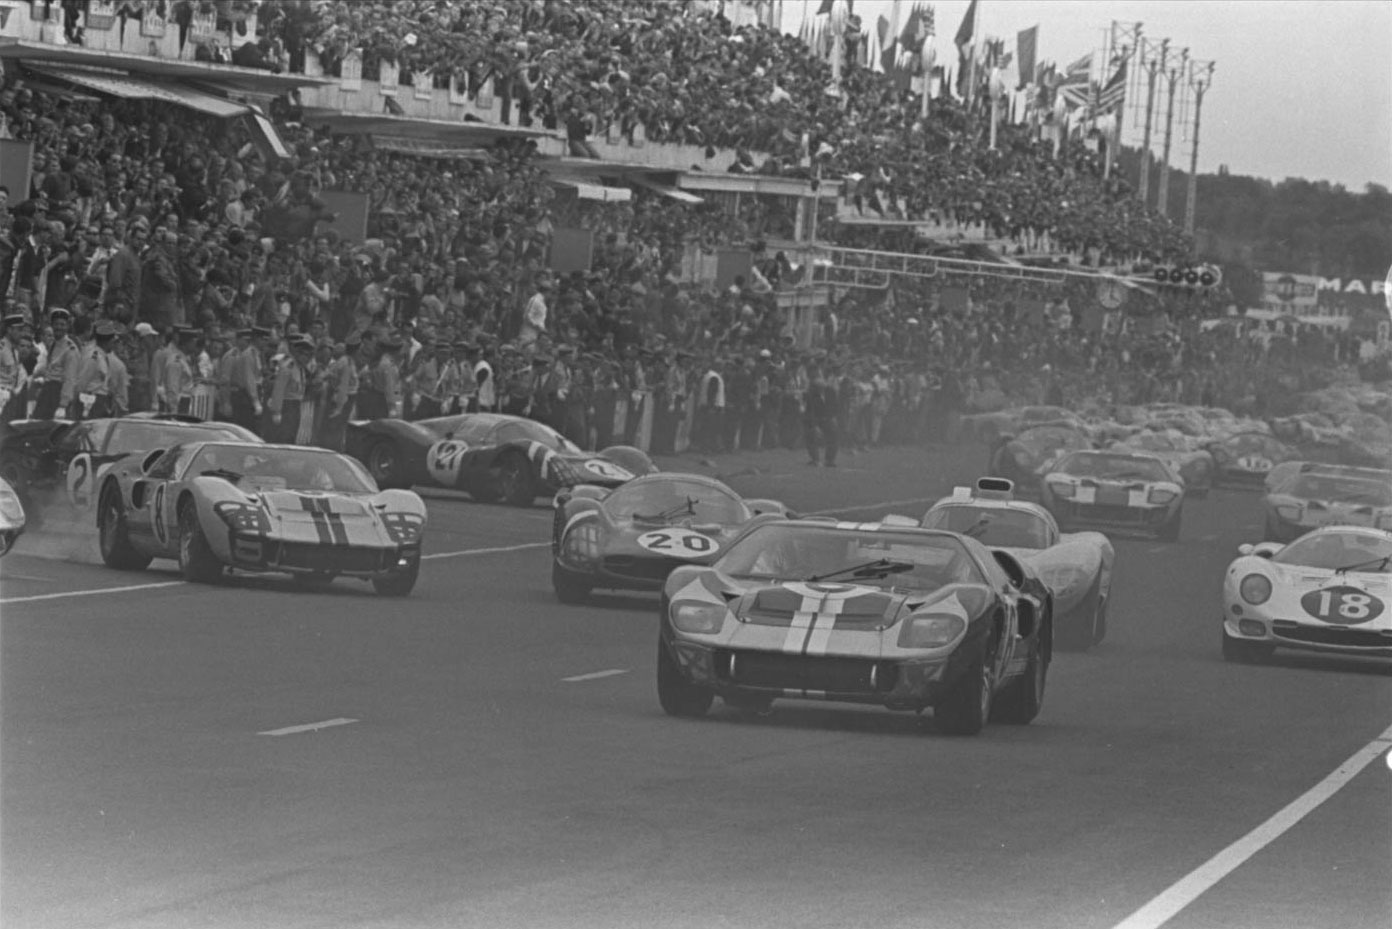 June 18, 1966. Ford and Ferrari jockey for position during the typically chaotic Le Mans start. The Holman- Moody No. 6 Ford GT40 shared by Mario Andretti and Lucien Bianchi gets away, but their car would retire in the eighth hour with a blown head gasket.